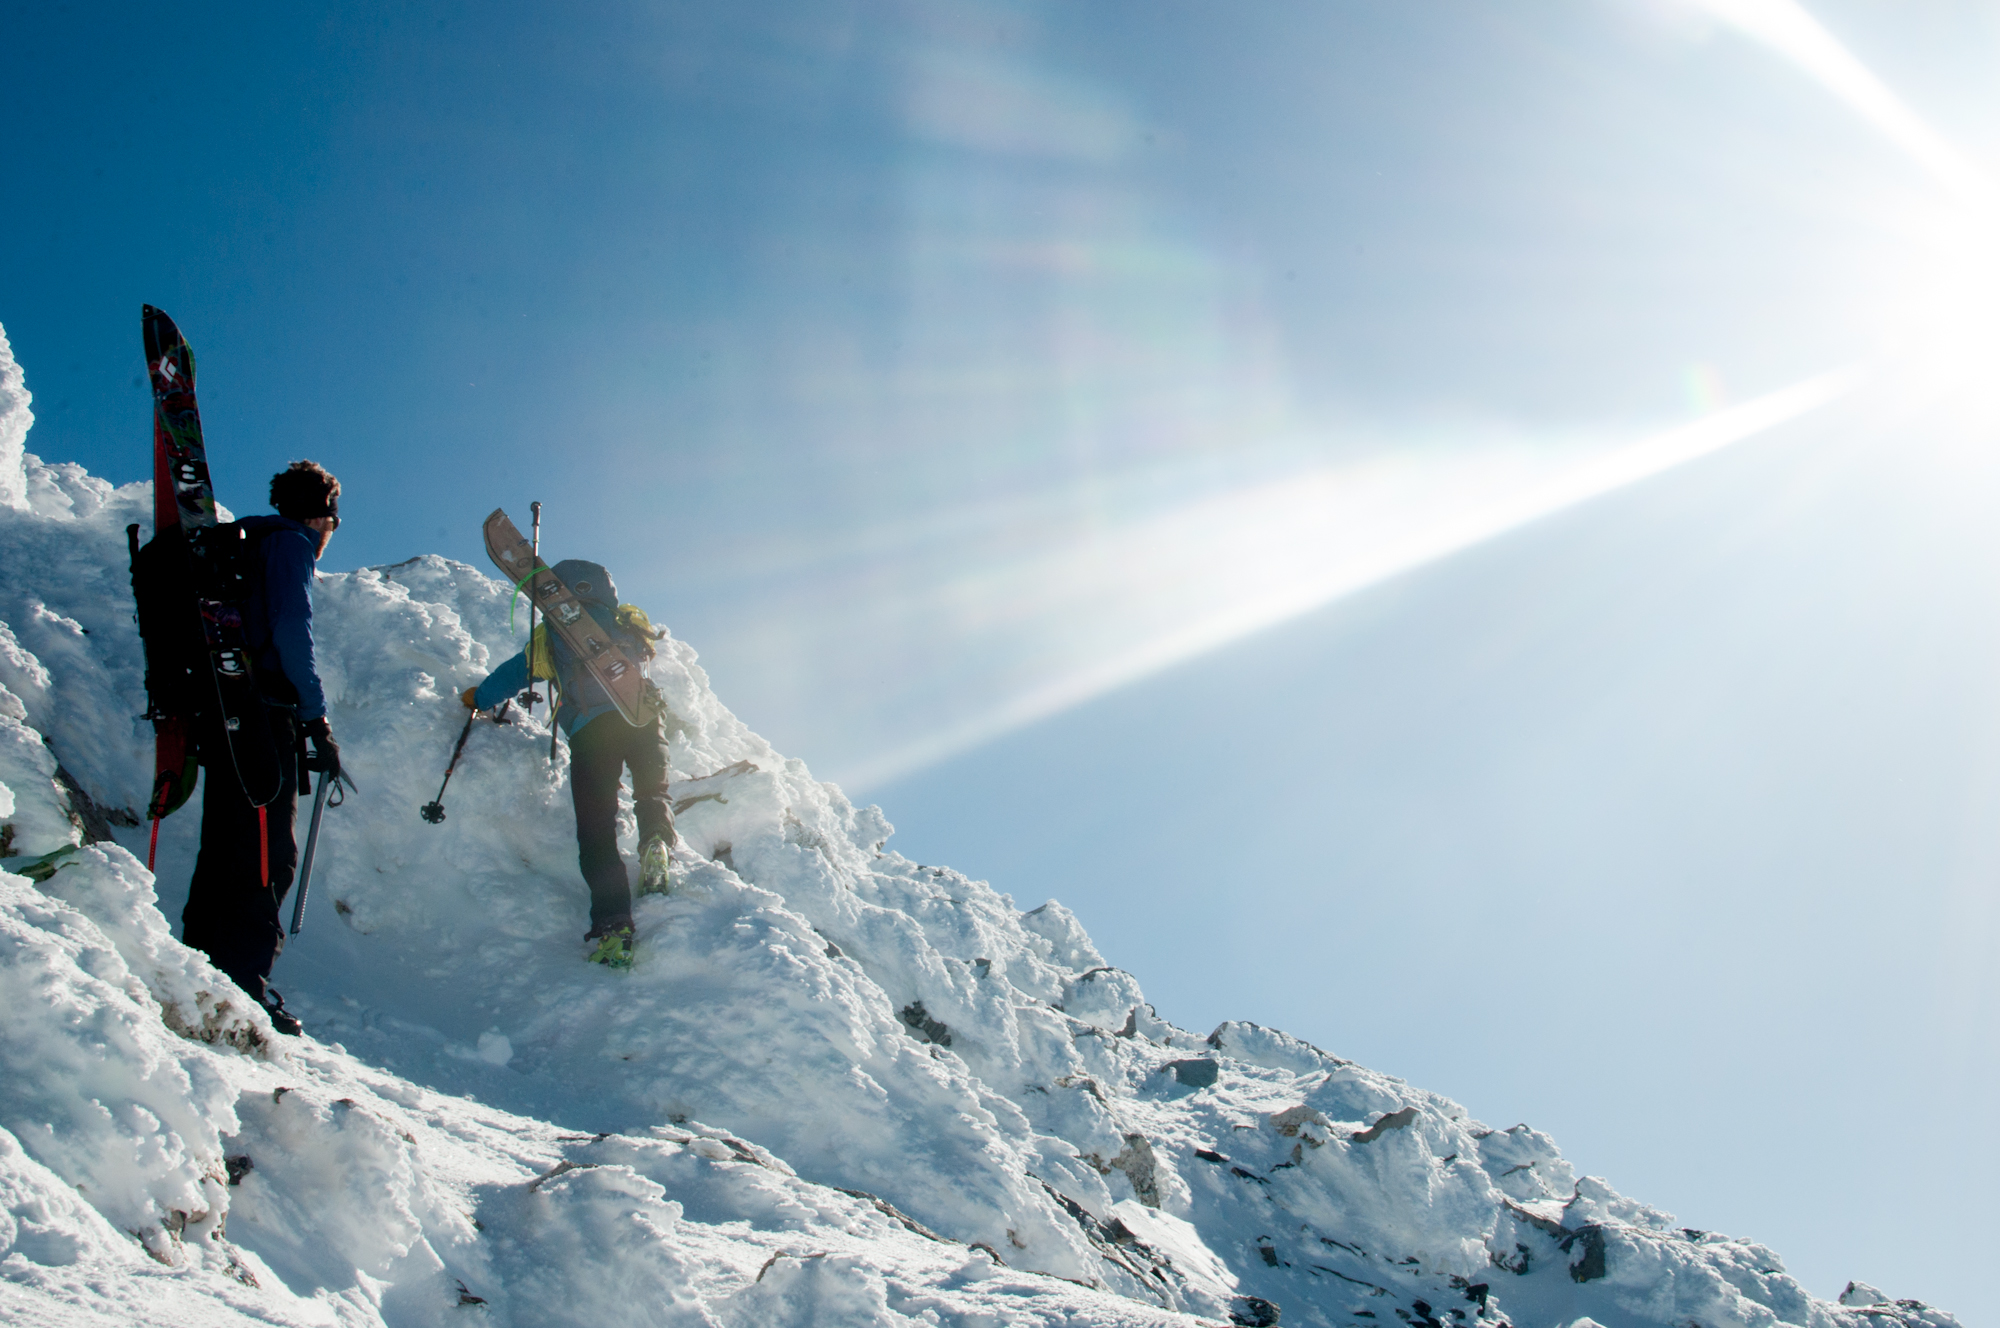 Ben Glatz and Derrik Sulzer nearing the summit of the South Teton